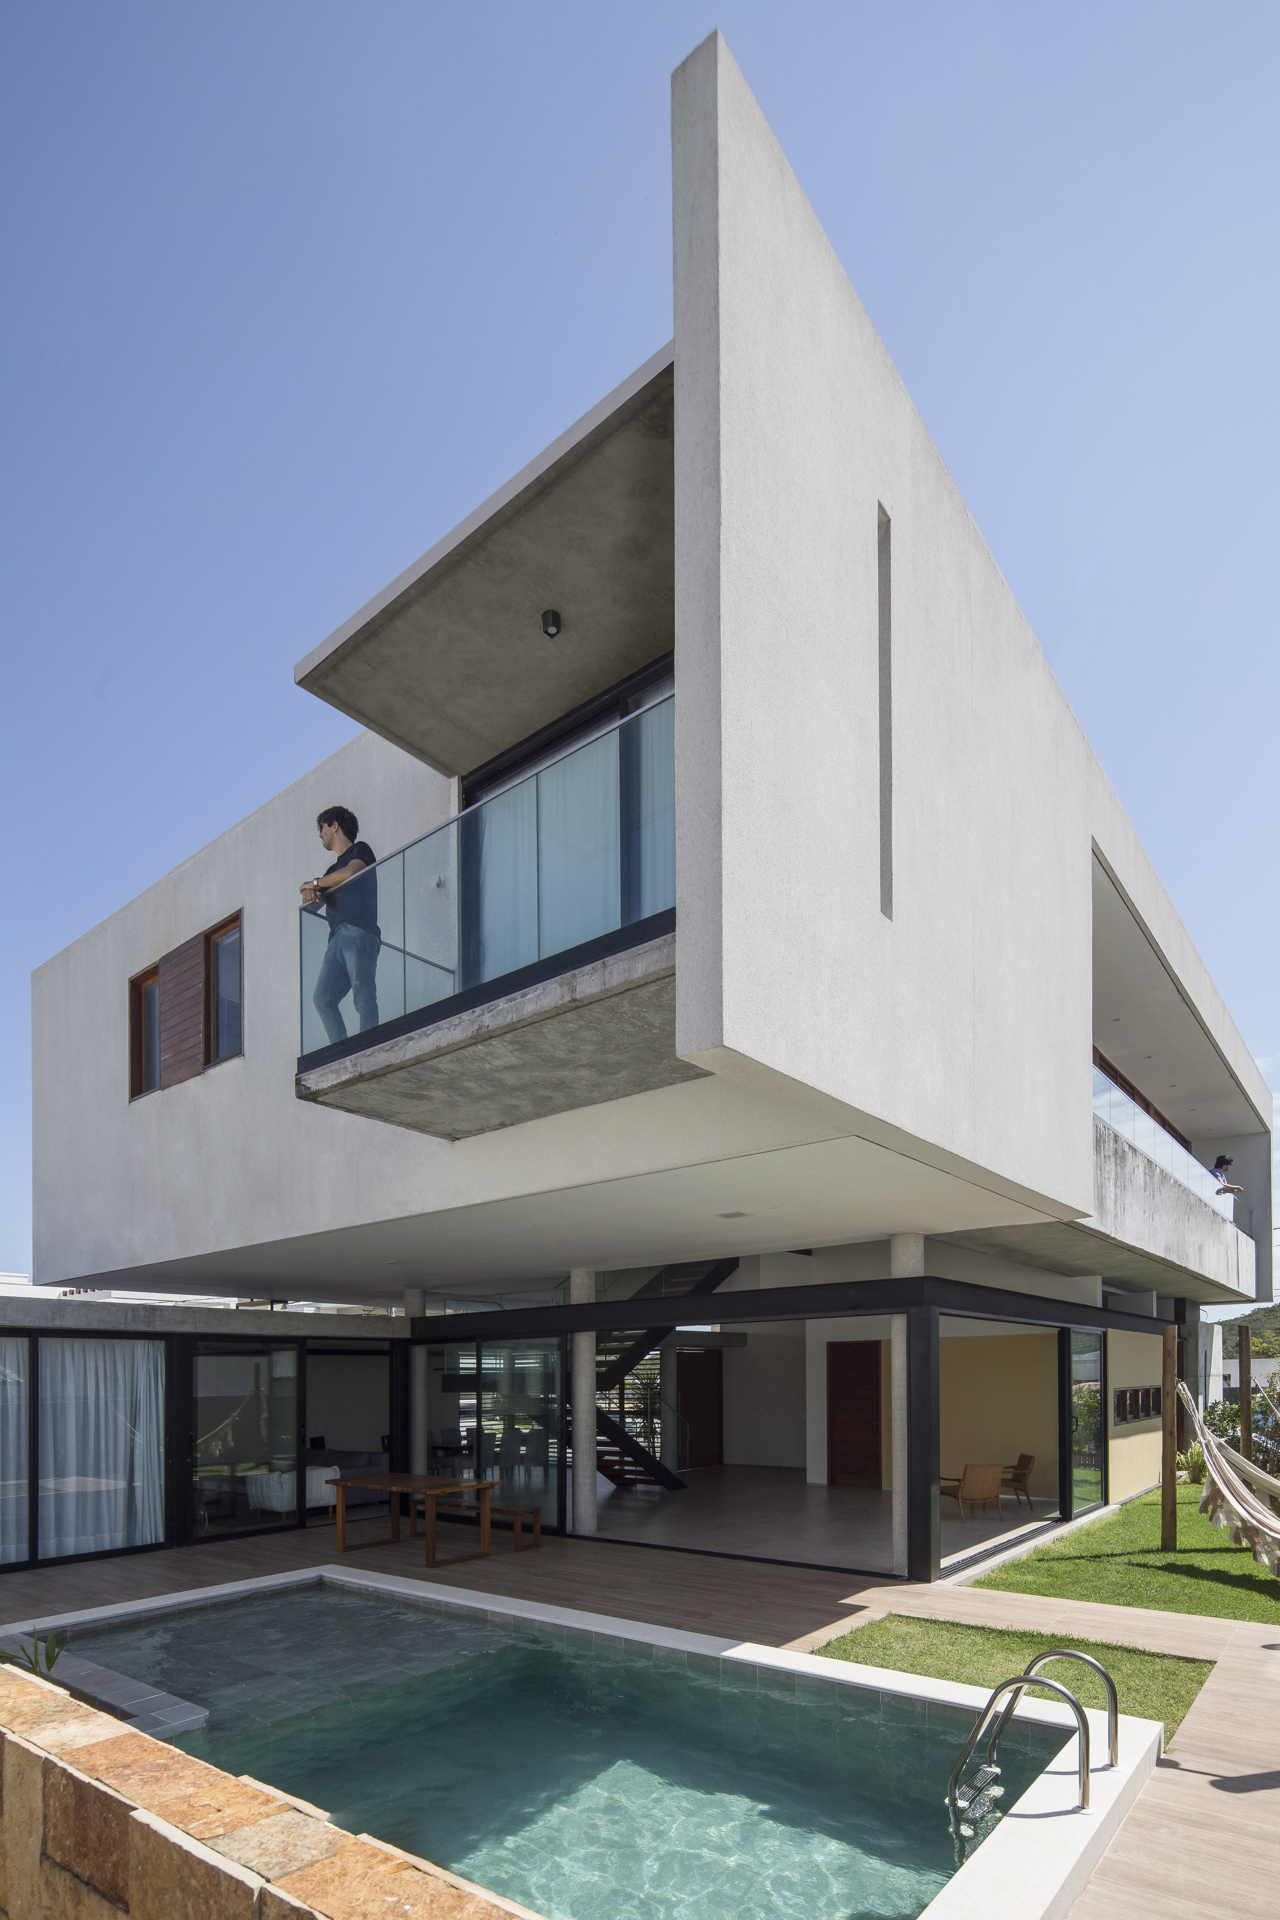 14_CASA_IF_-_Martins_Lucena_Arquitetos-30.jpg